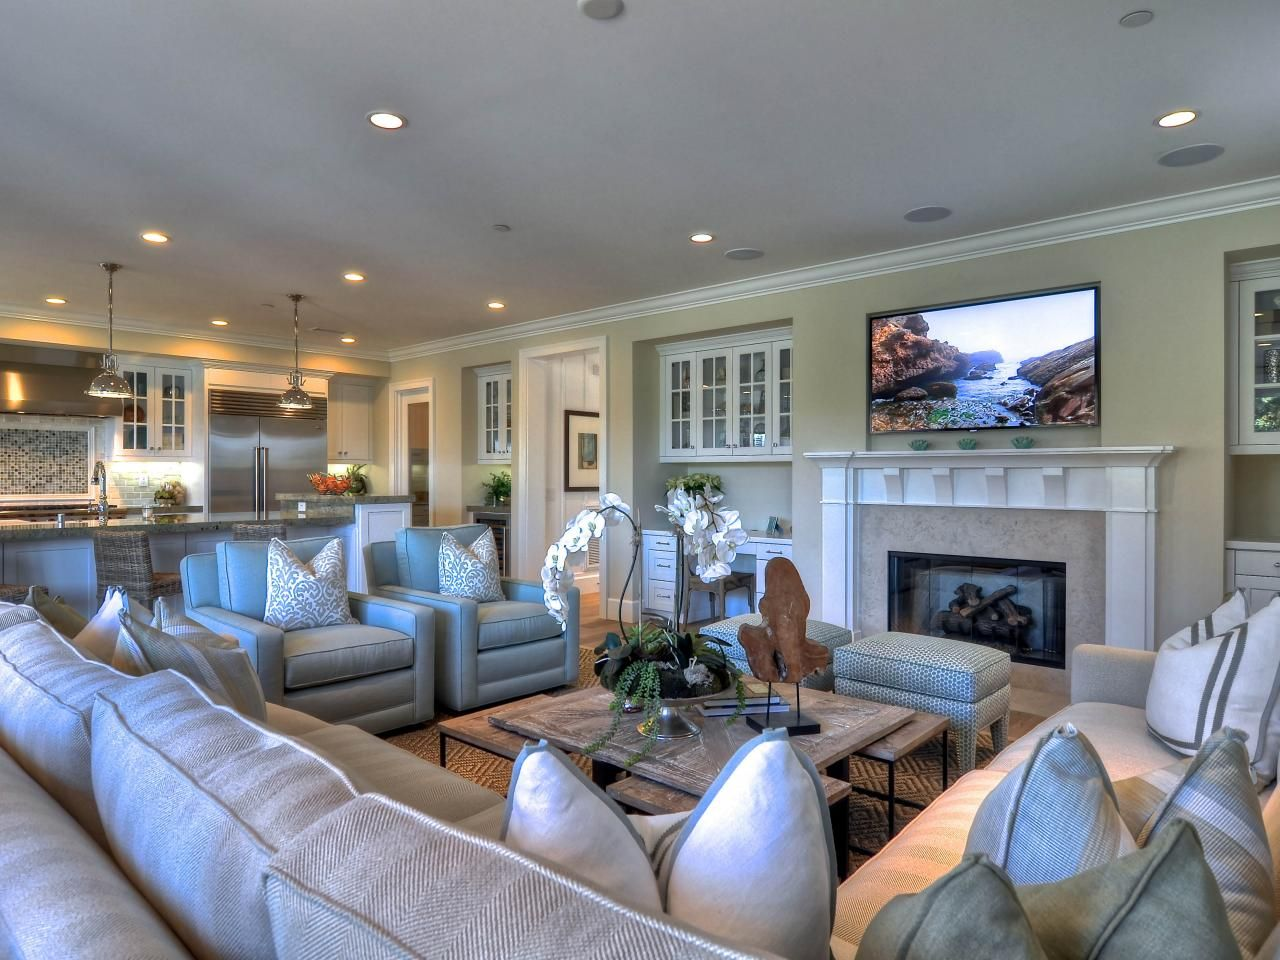 Coastal decor is found in the details in this spacious for Family sitting room ideas